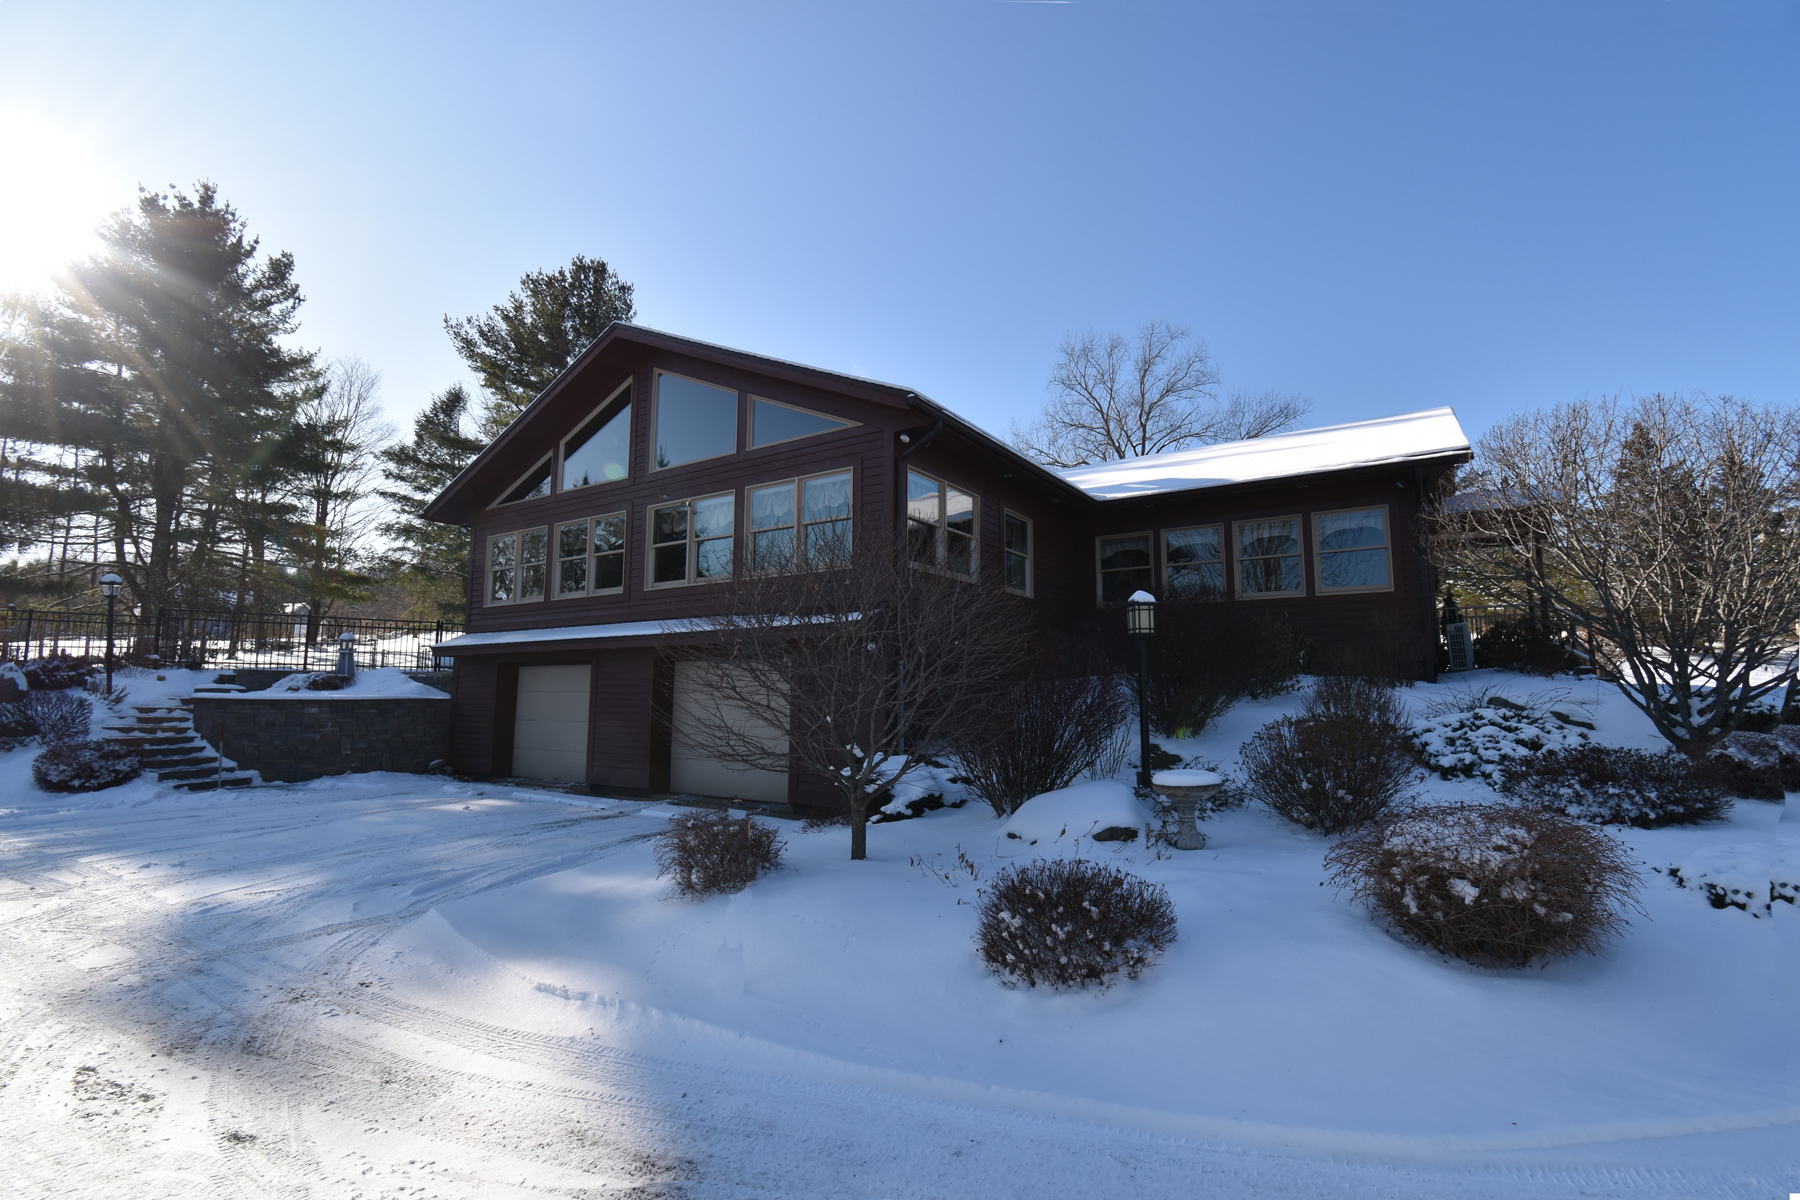 Single Family Homes for Sale at Gracious Ranch Style Home on 5+ Acres 1387 Mckinley Ave Rutland Town, Vermont 05701 United States